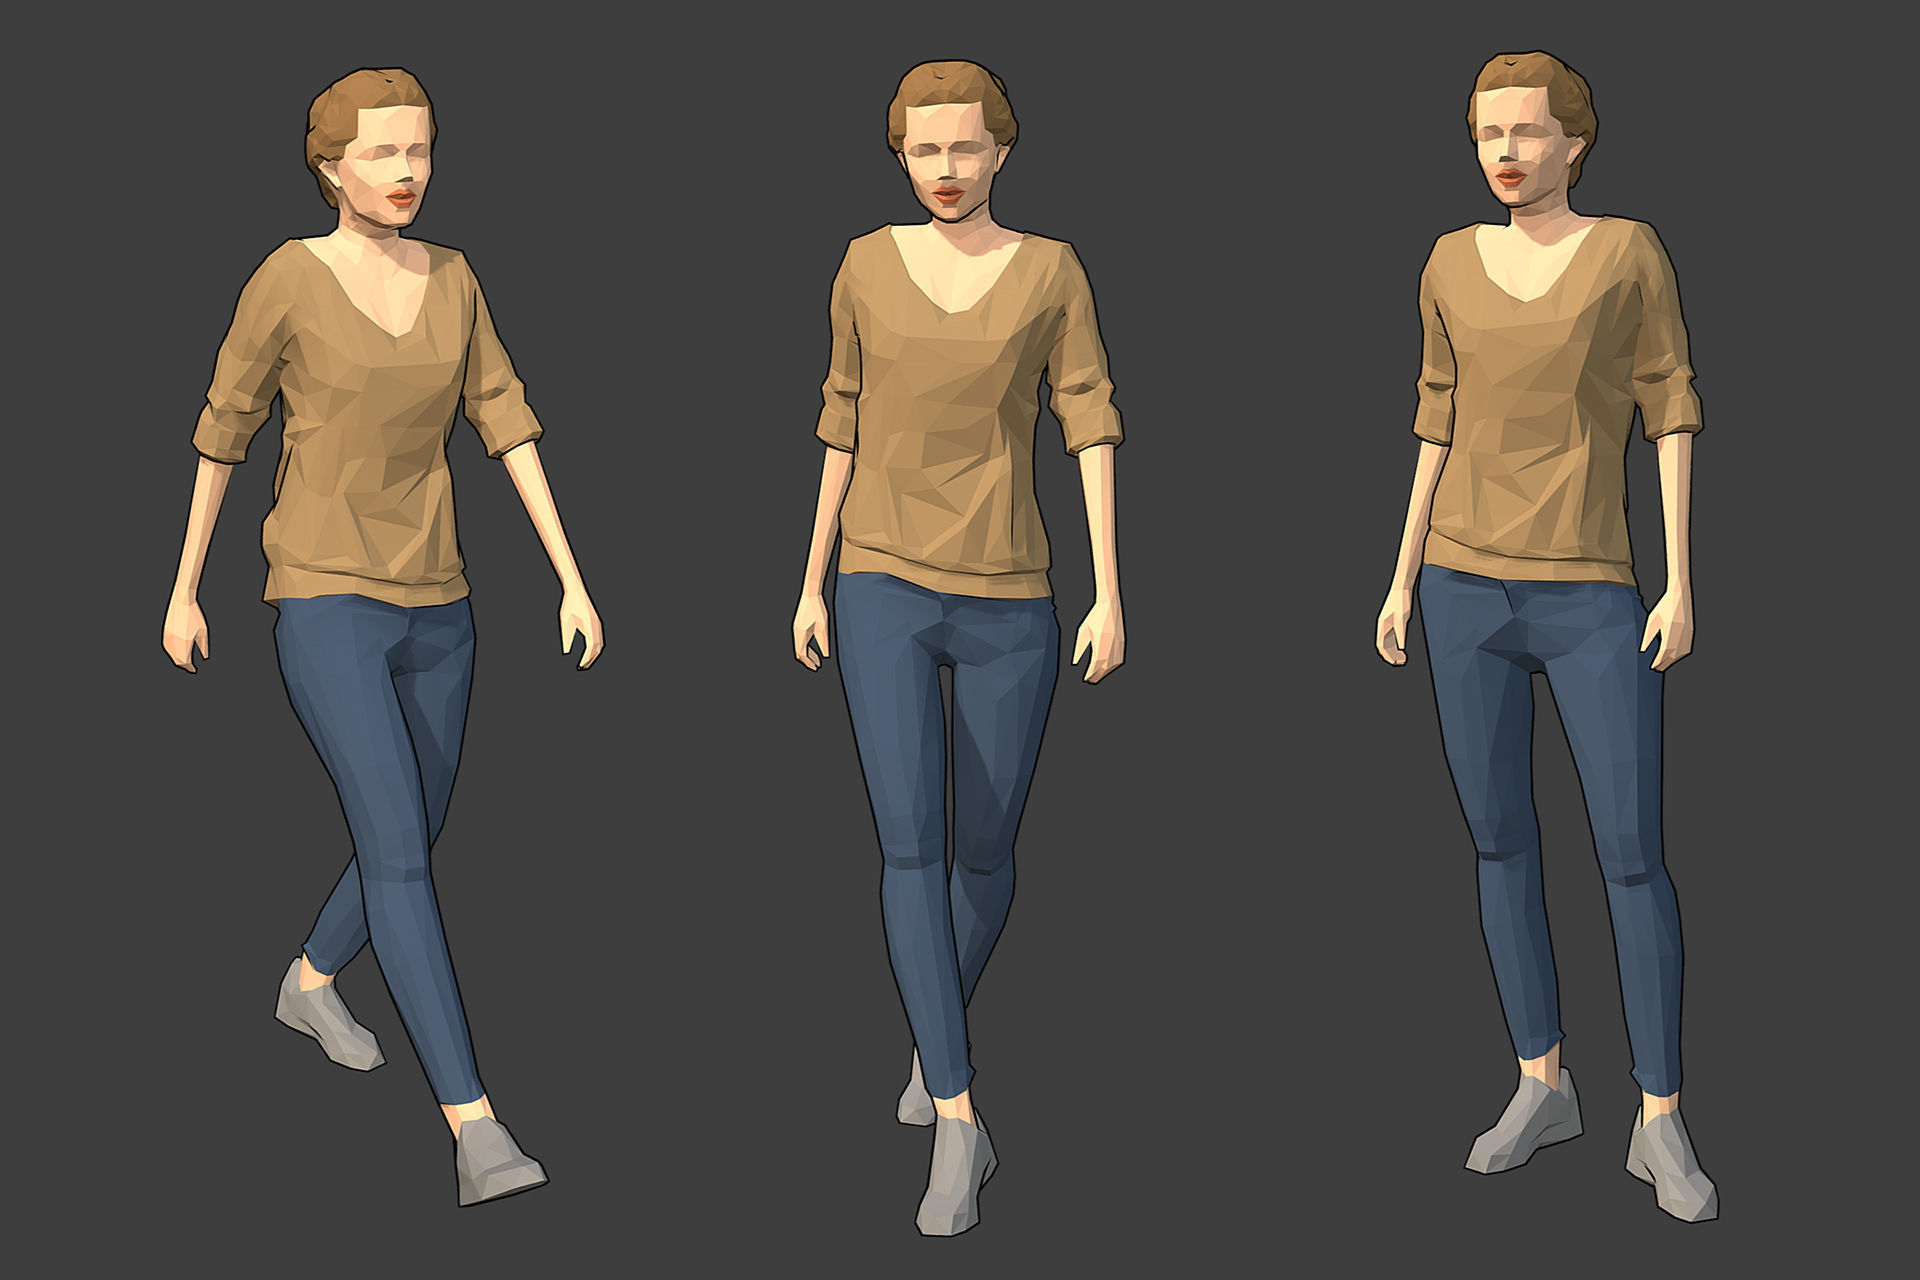 Rigged Lowpoly Female Character - Victoria